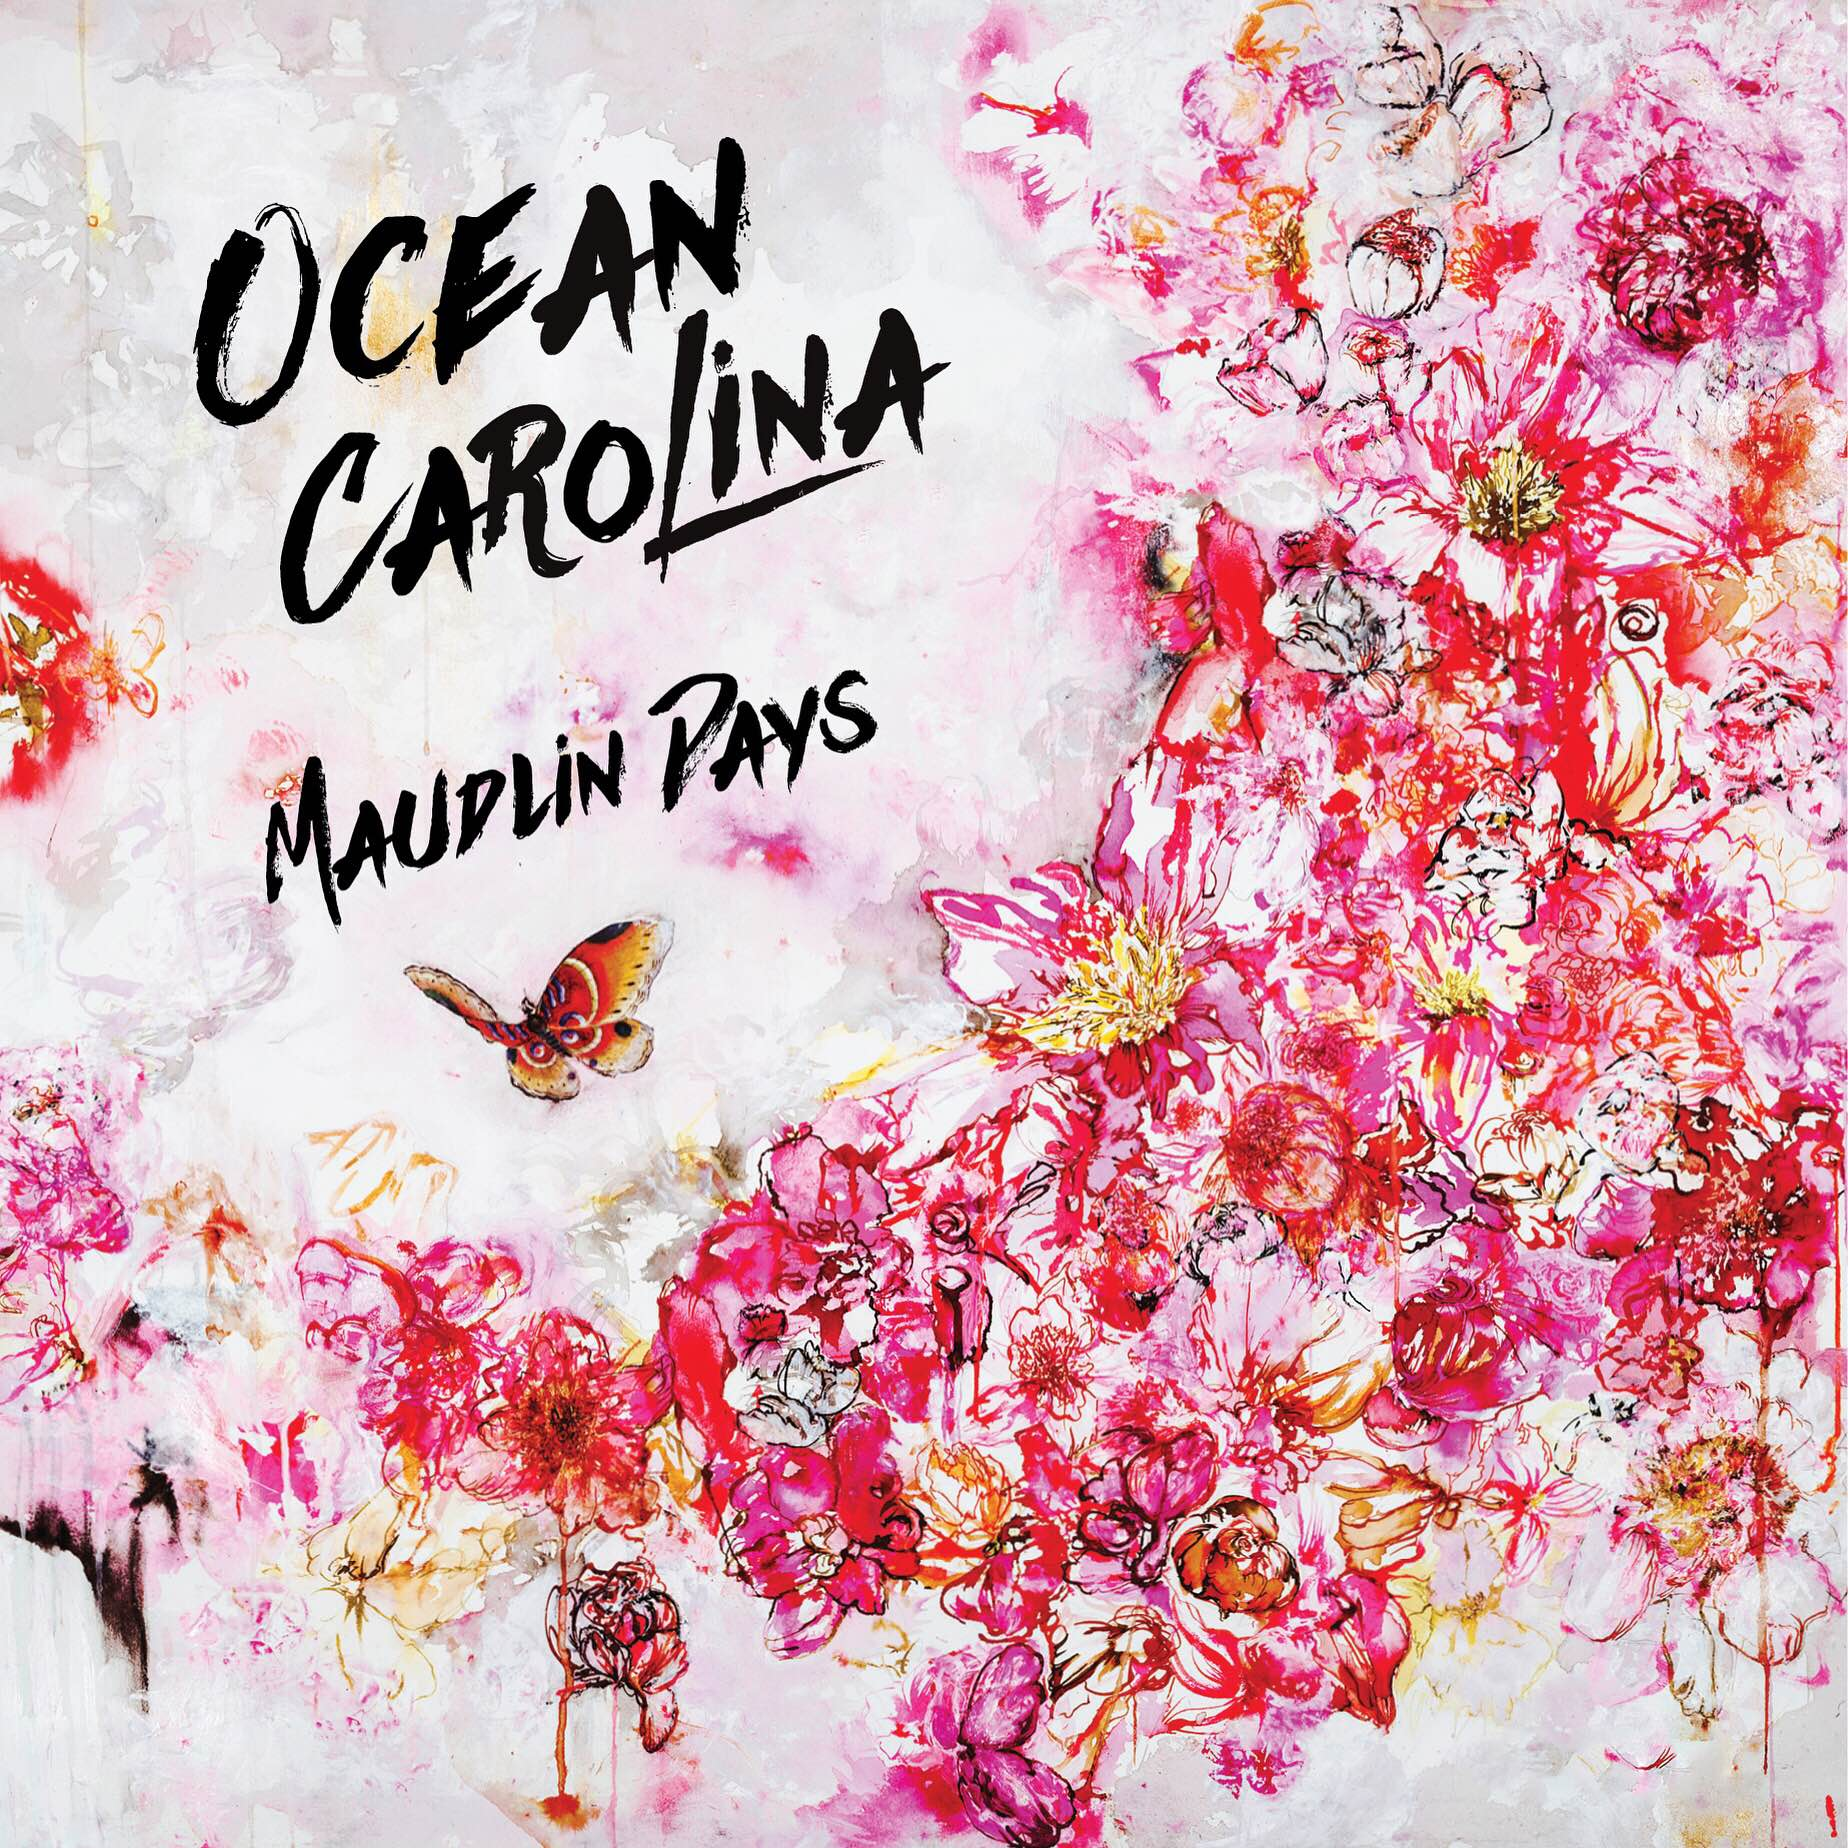 ocean carolina maudlin days